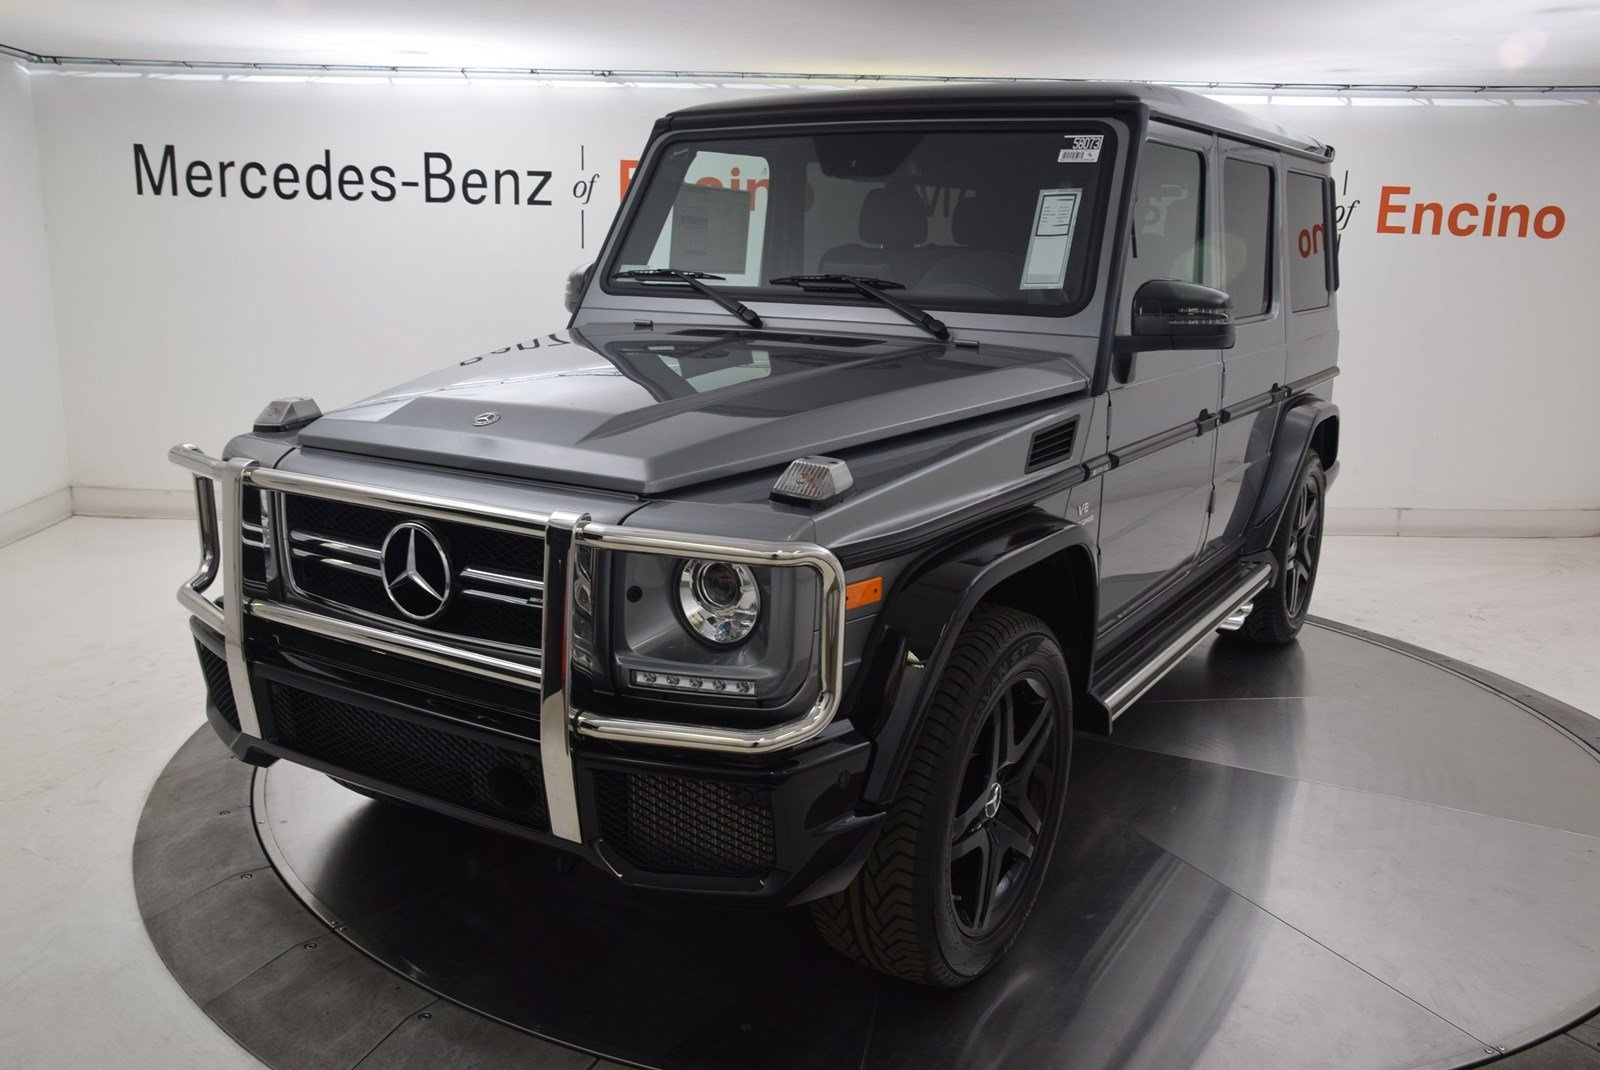 new 2018 mercedes benz g class g 63 amg suv suv in encino 58073 mercedes benz of encino. Black Bedroom Furniture Sets. Home Design Ideas